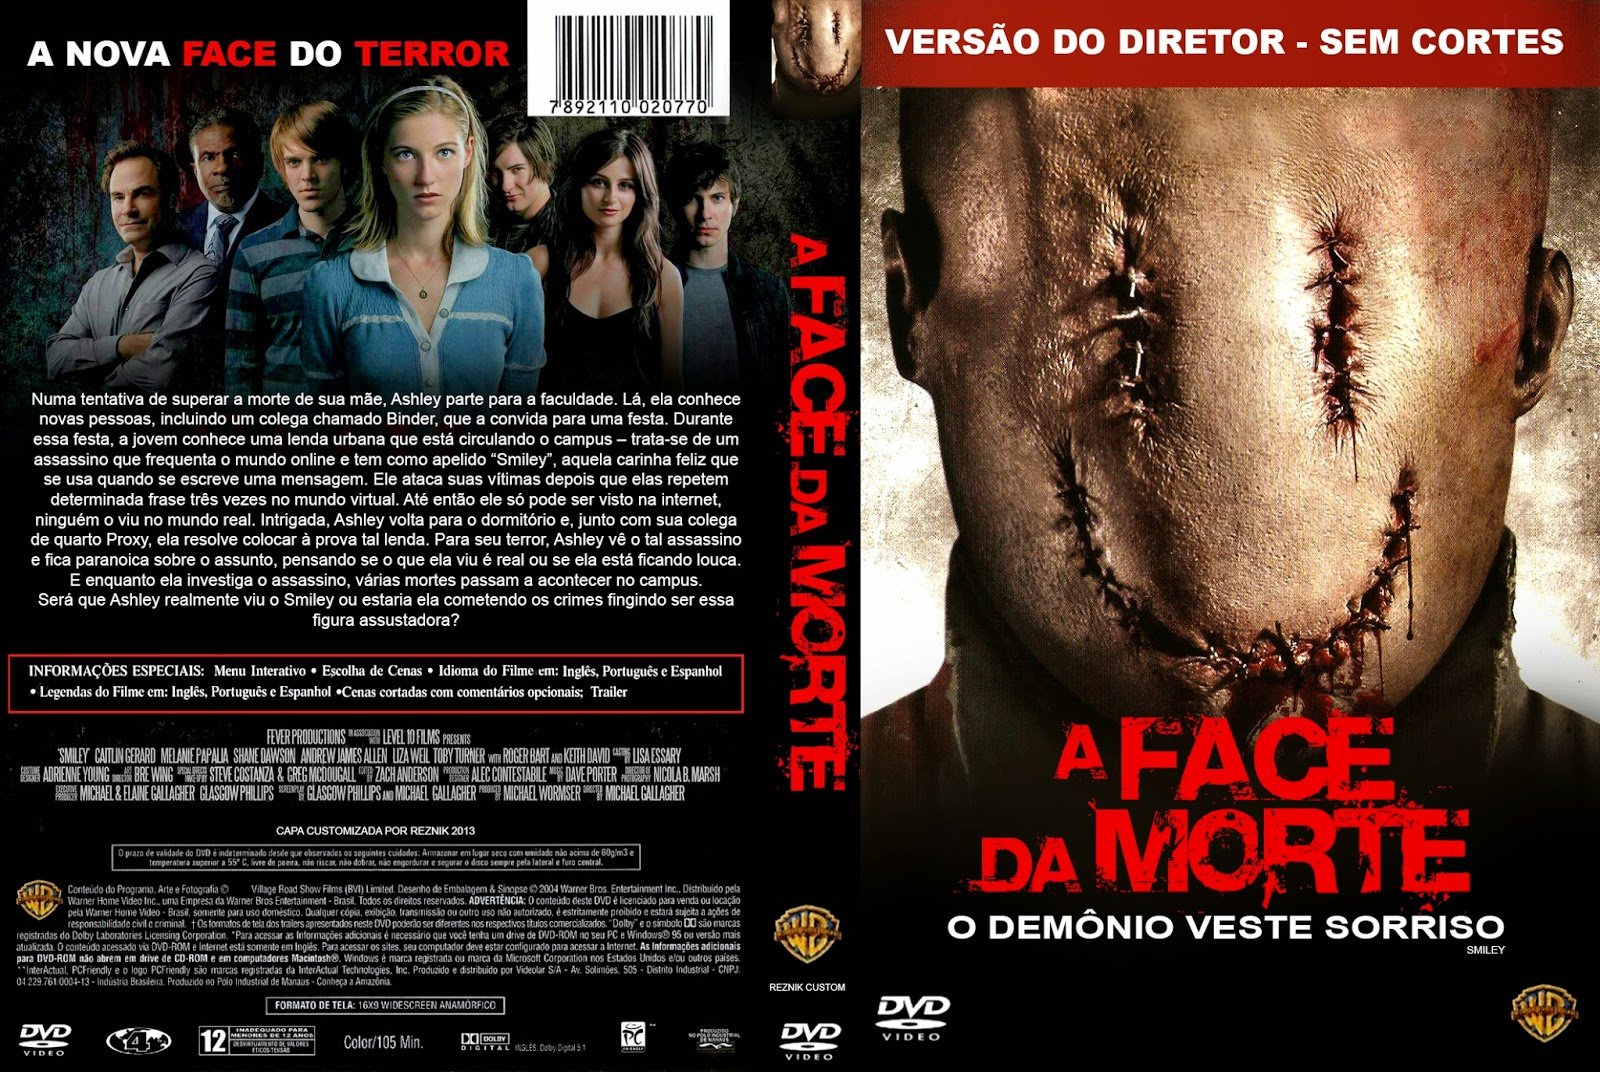 Poster A+Face+Da+Morte A Face da Morte Dublado Torrent RMVB + AVI Dual Áudio